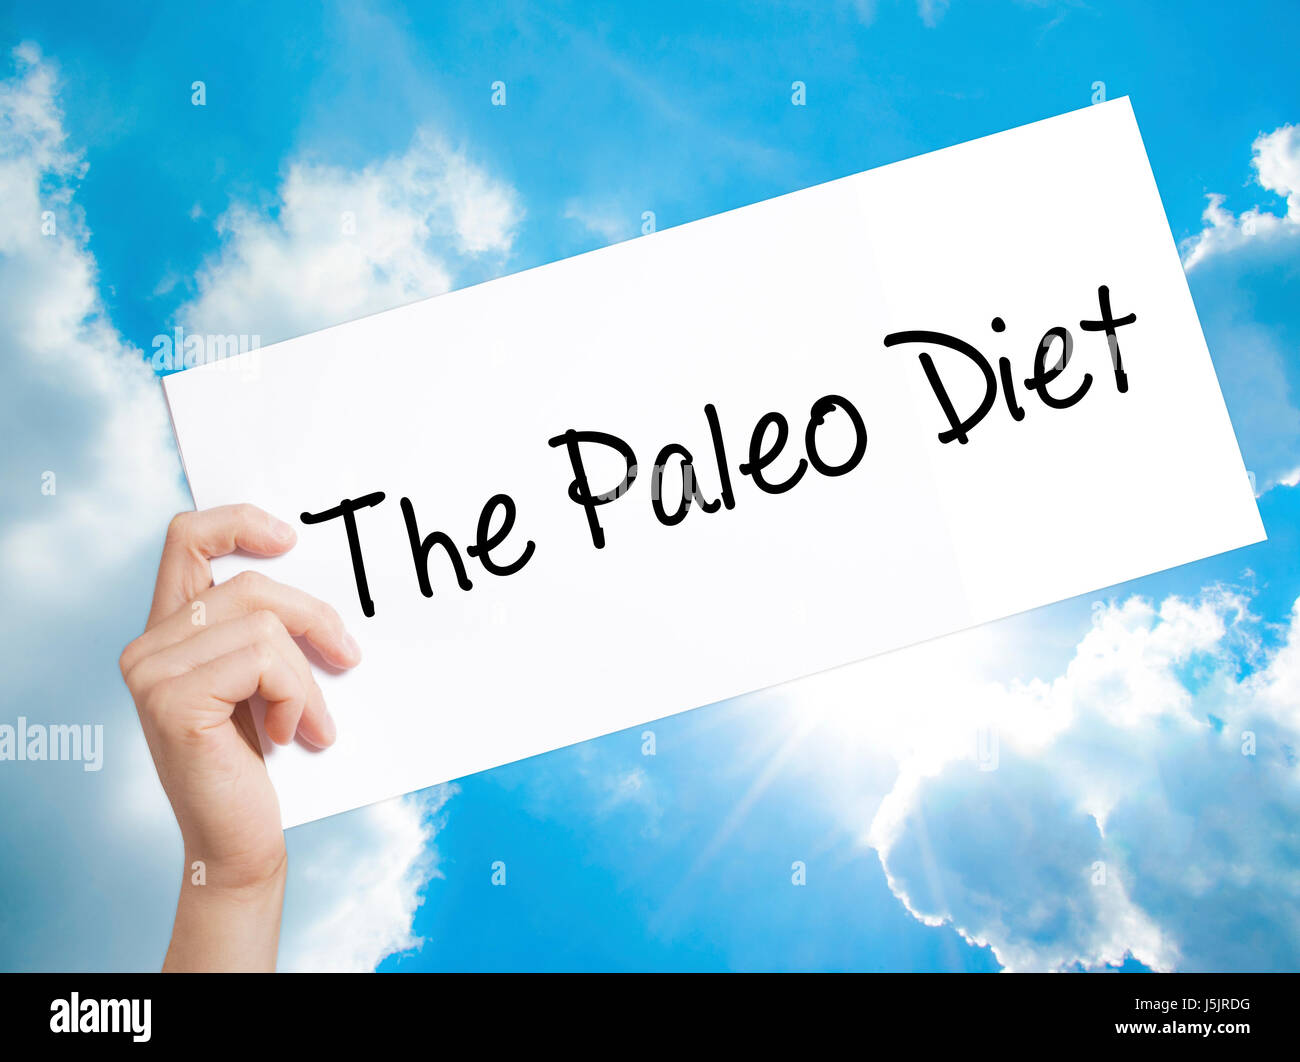 The Paleo Diet Sign on white paper. Man Hand Holding Paper with text. Isolated on sky background. Medical, Business - Stock Image